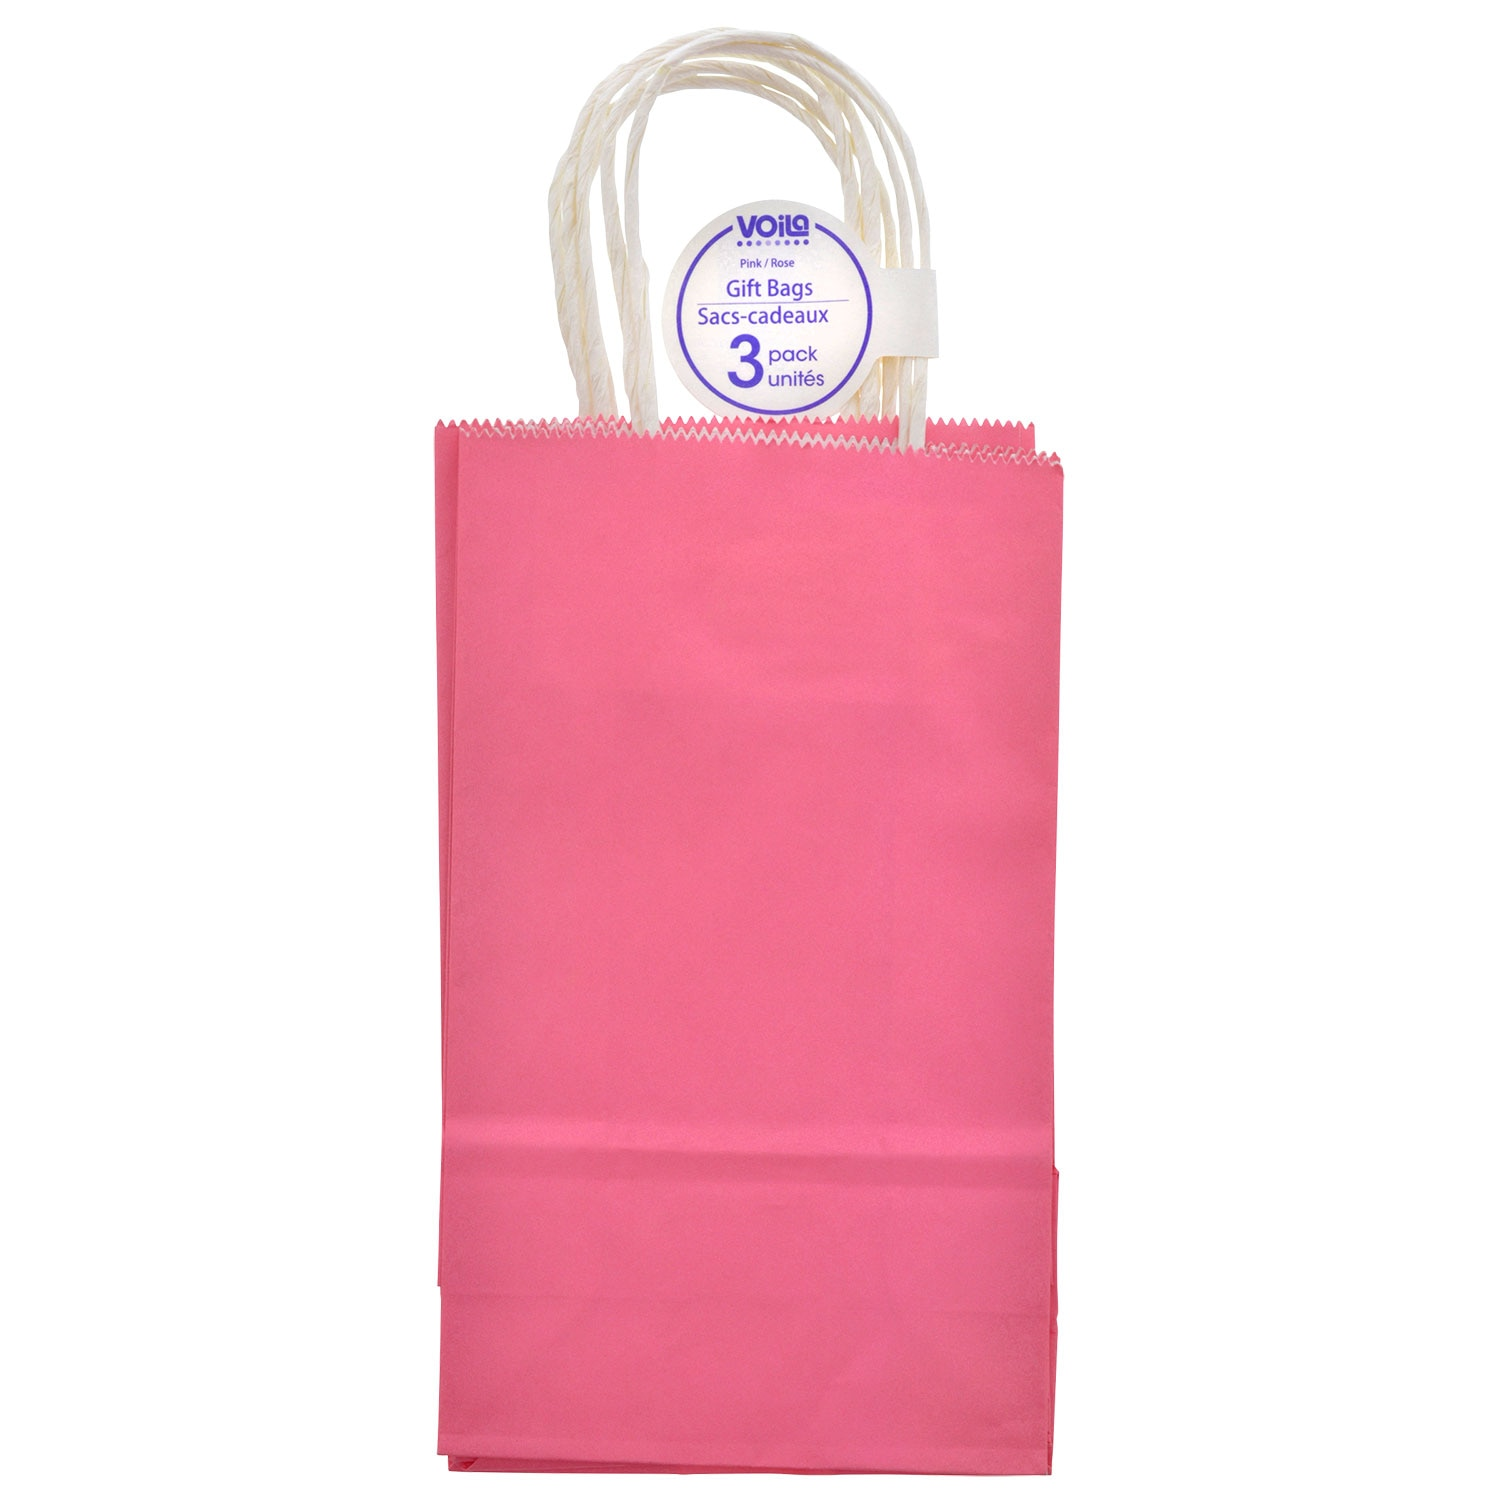 fbe3a58716f3a Pink Kraft Paper Gift Bags